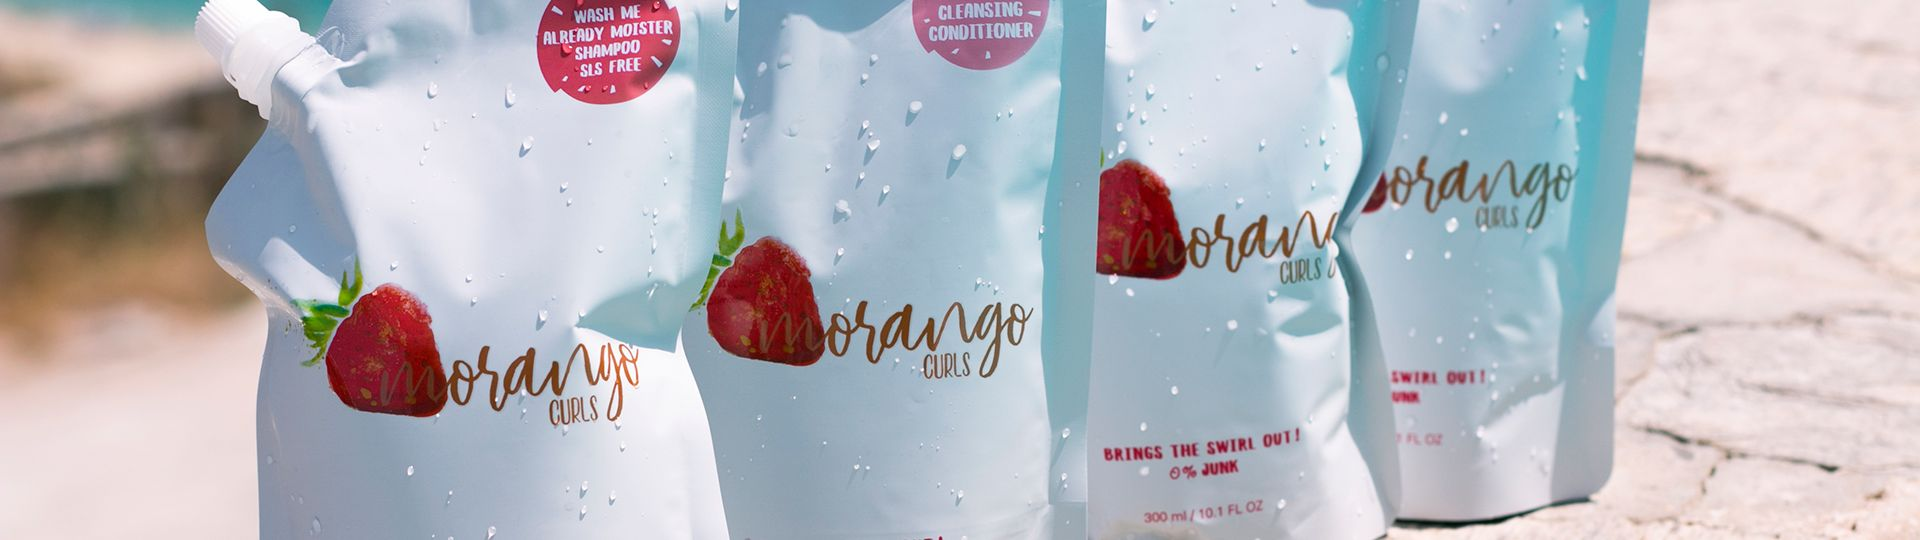 morango curls product line